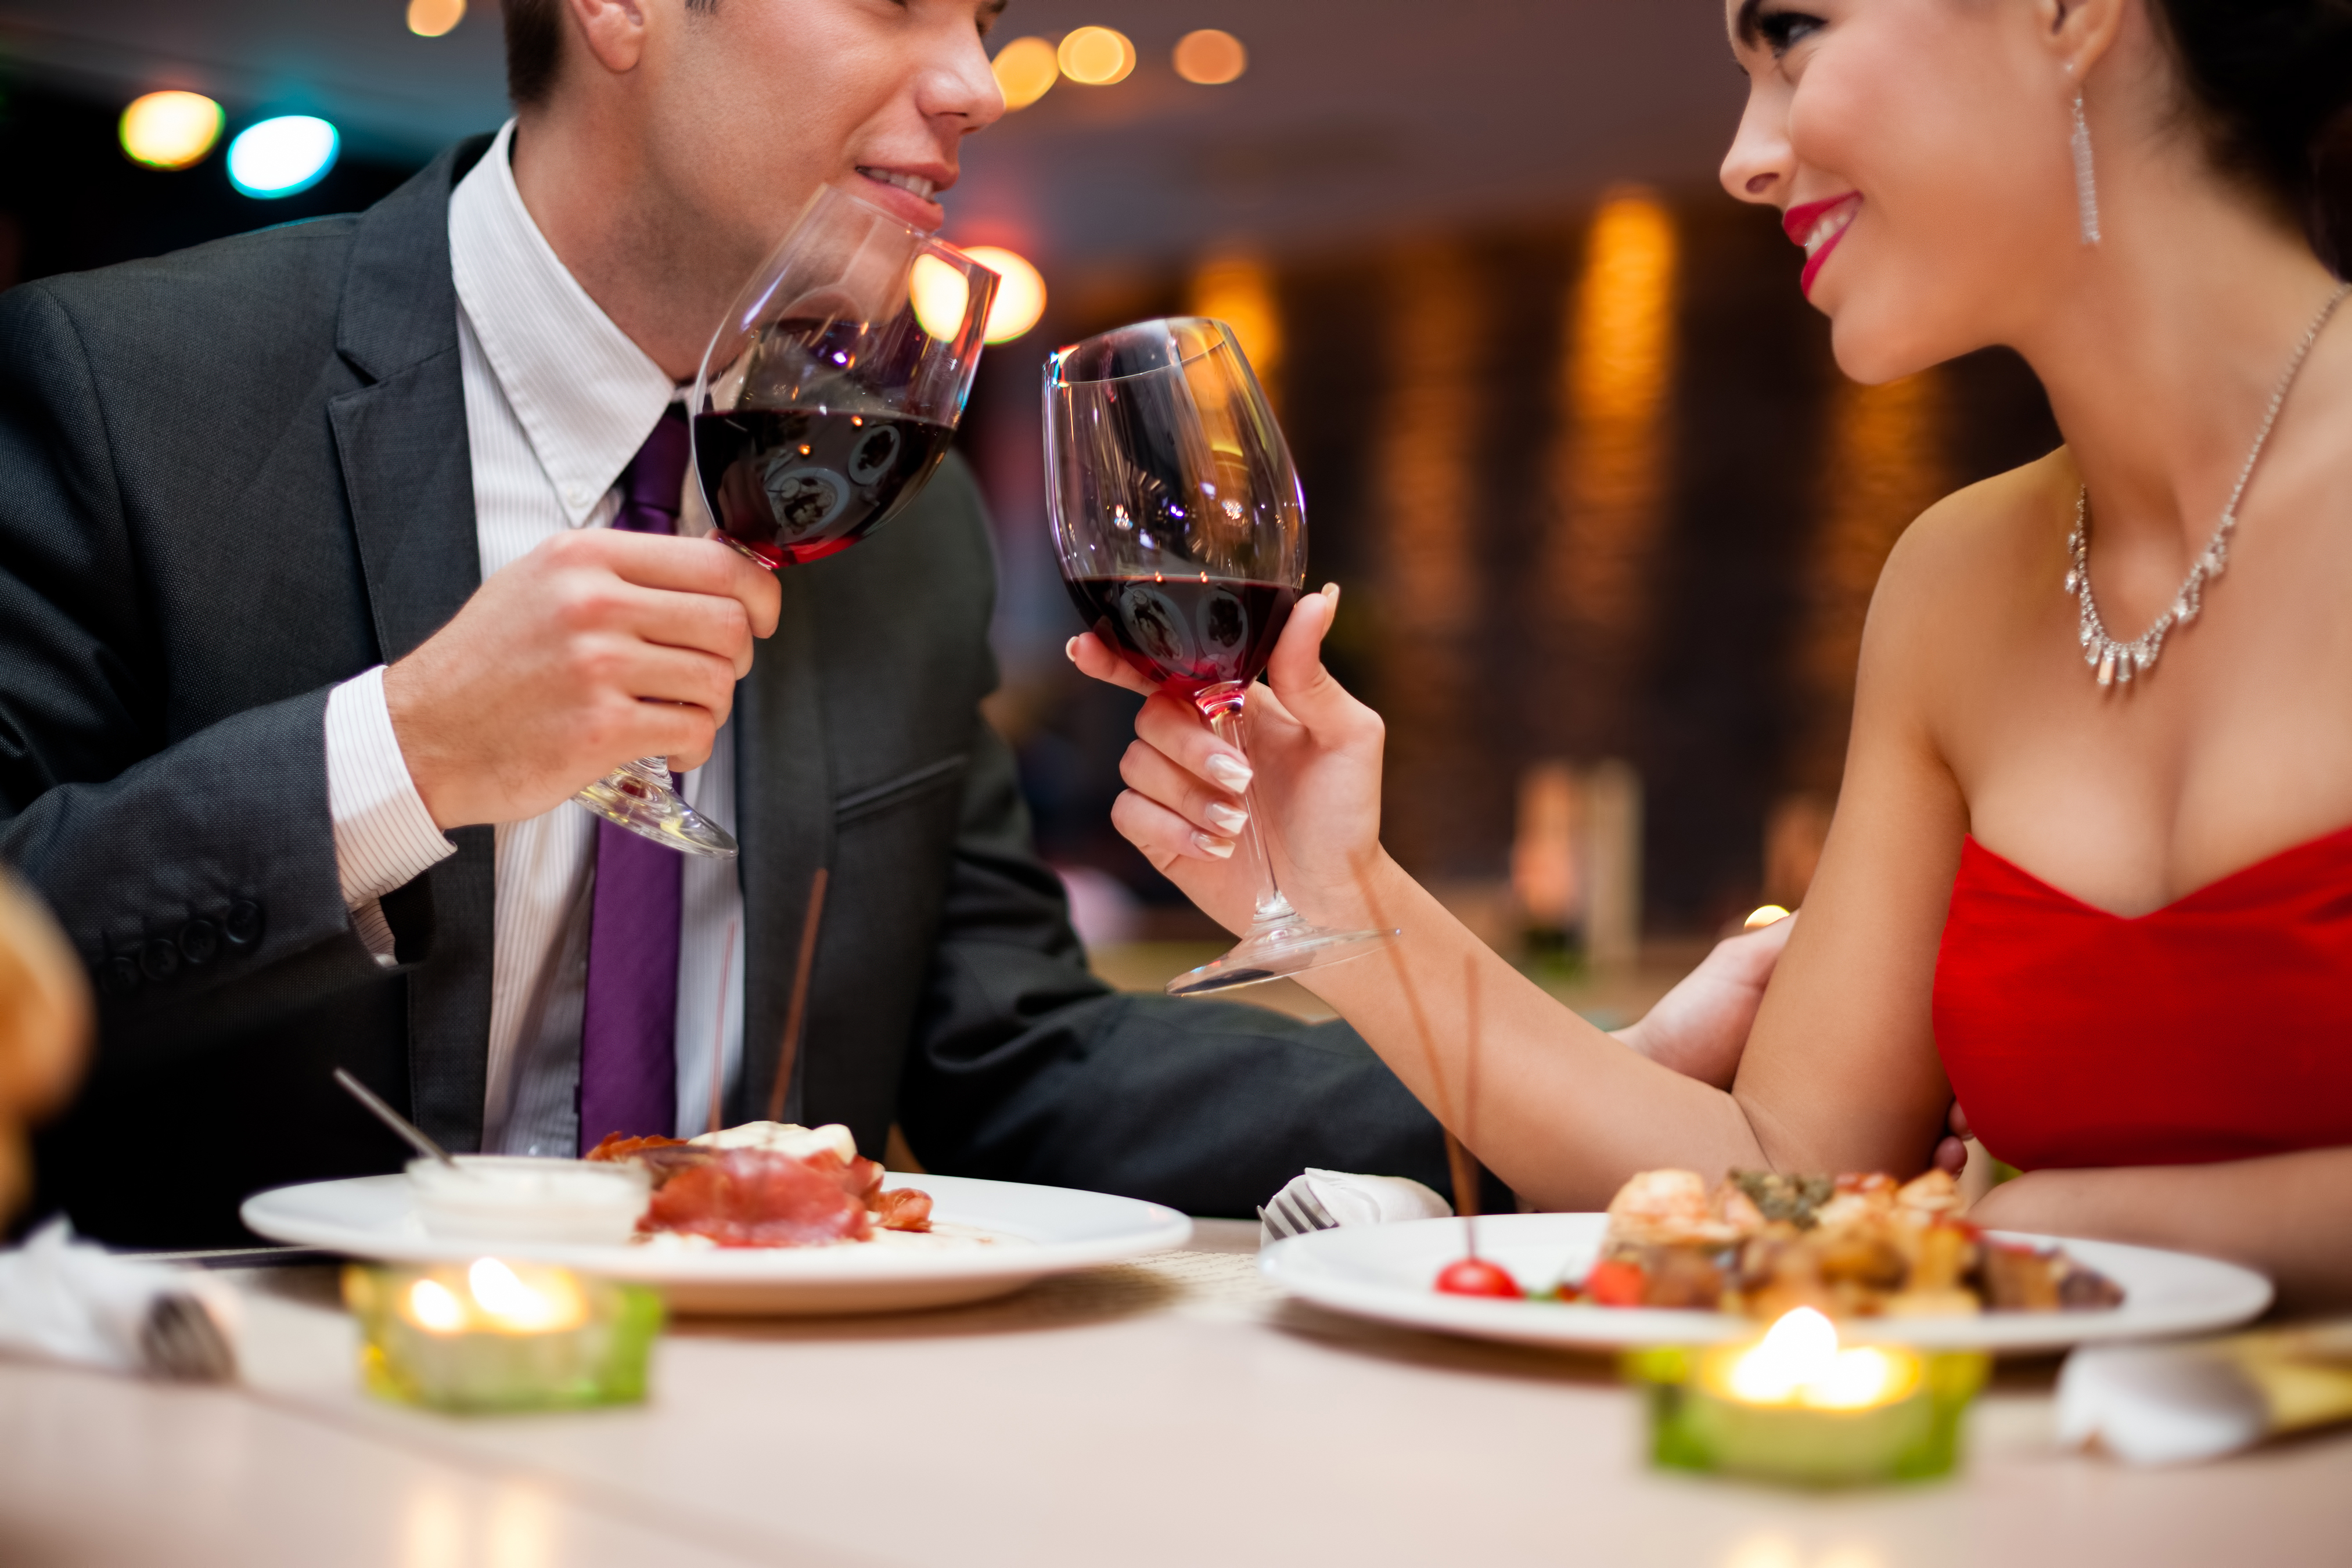 dinner for six dating services Dinner dating service best dinners for meet singles face to face events for singles dinner for eight melbourne dinner for six melbourne near you speed datingi'm getting a lot of reflected glory as dinner dating service the future sister in law of.